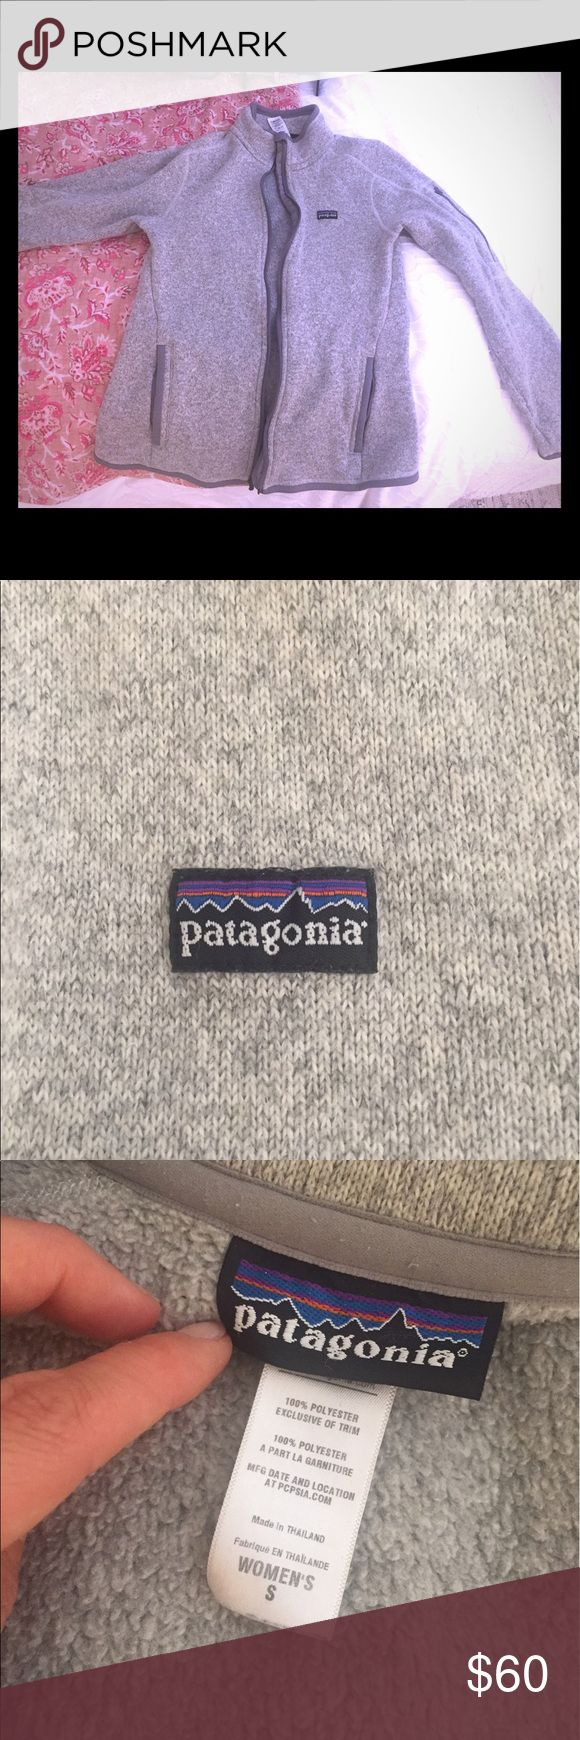 Patagonia Women's Jacket Patagonia Better Sweater Jacket for Sale.  Size small.  Sweater-knit fleece.  Birch white color.  Bought brand new from Nordstroms.  Selling because I just don't wear it.  No tears, rips or stains.  Probably has been washed less than 5 times because I just never used this jacket. Patagonia Jackets & Coats